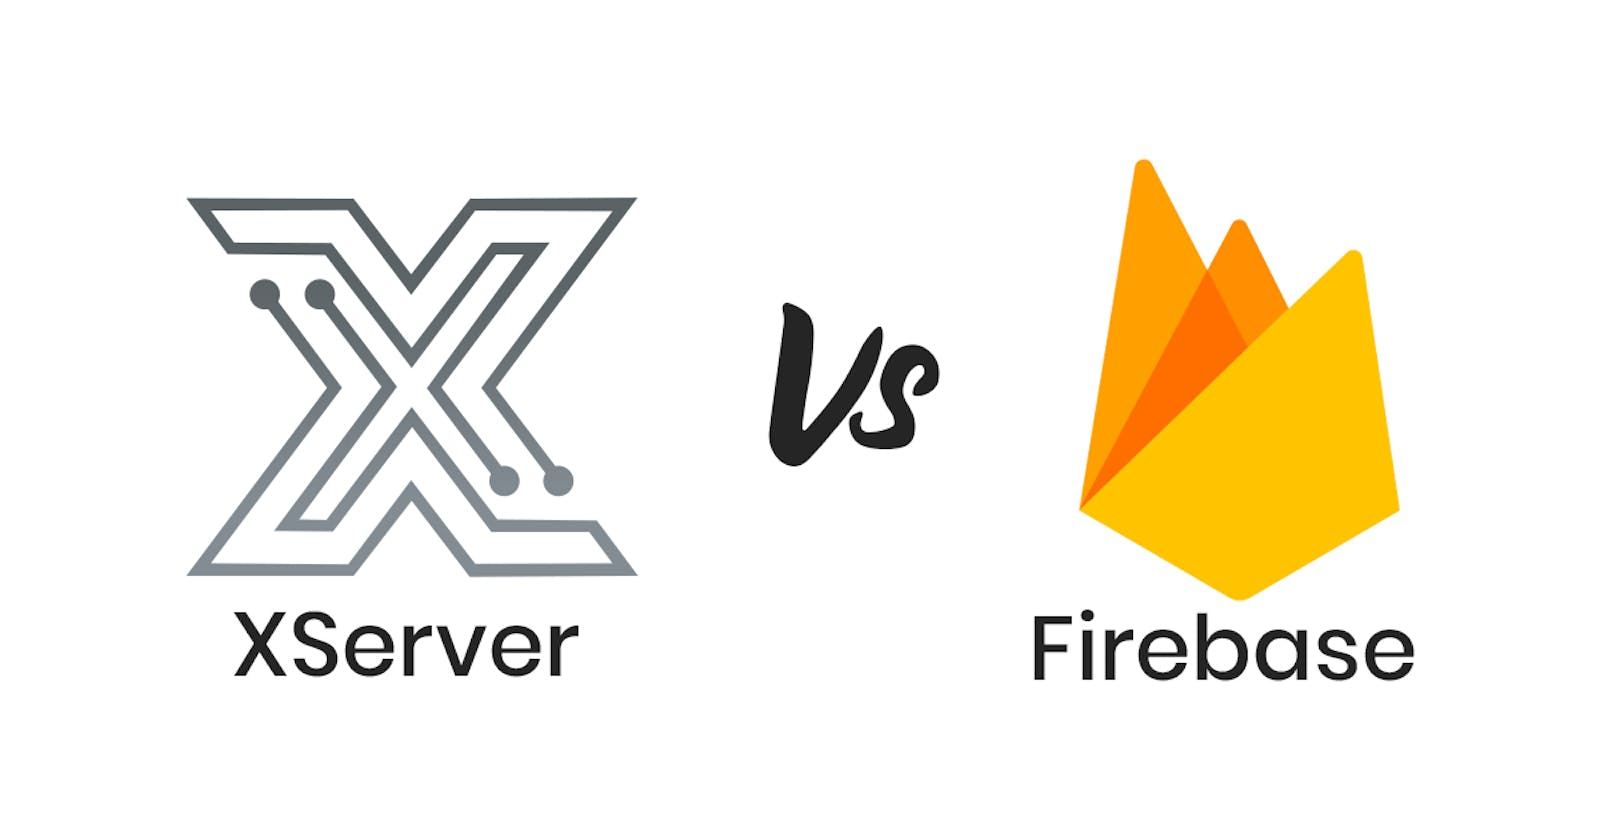 XServer vs Firebase - What are the differences